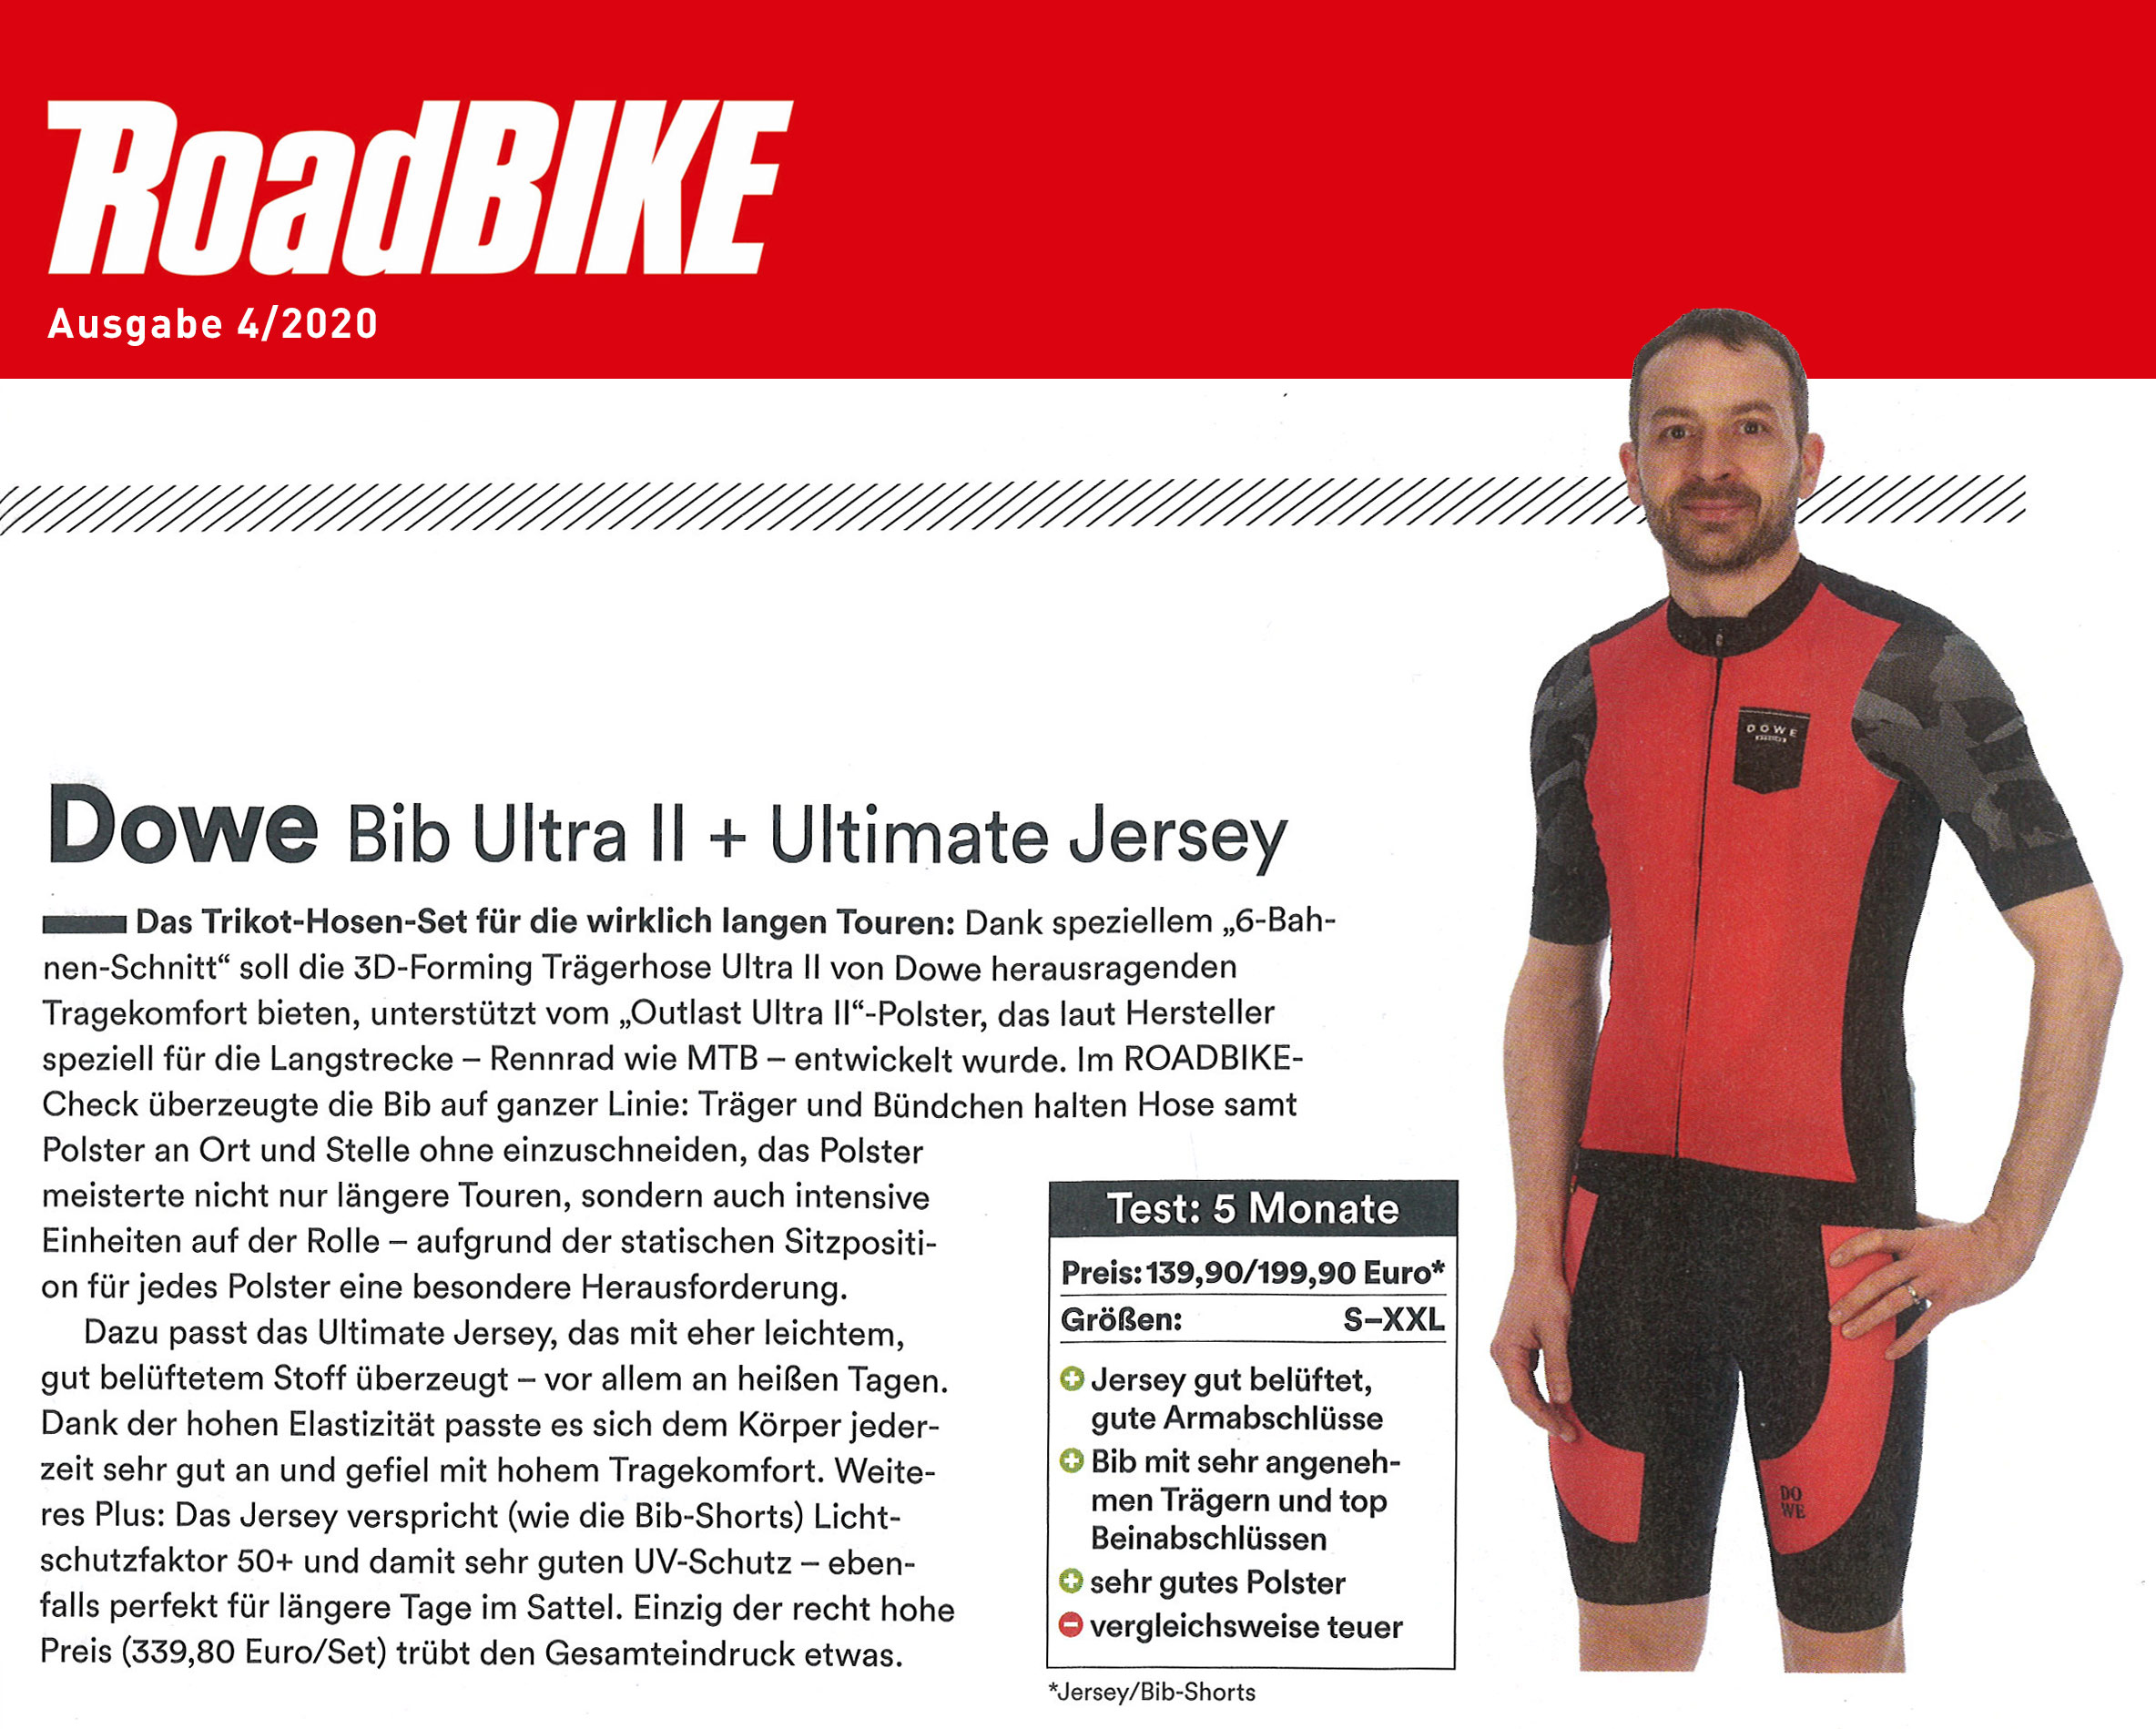 Produkttest DOWE Bib Ultra II + Ultimate Jersey in Zeitschrift RoadBike 4/2020